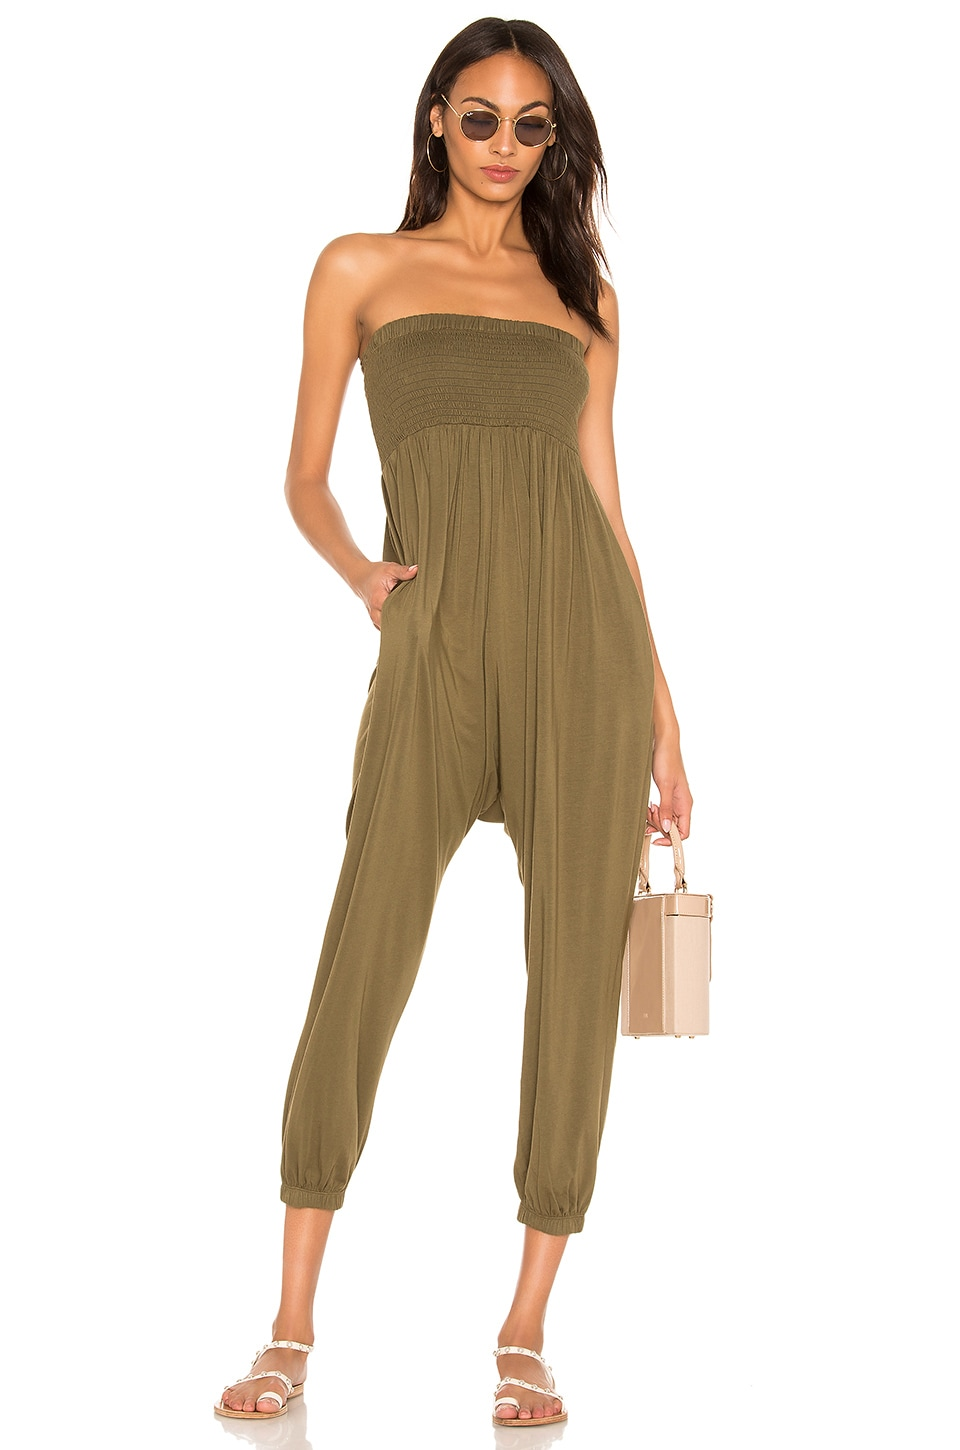 Bobi Draped Jersey Jumpsuit in Fatigues